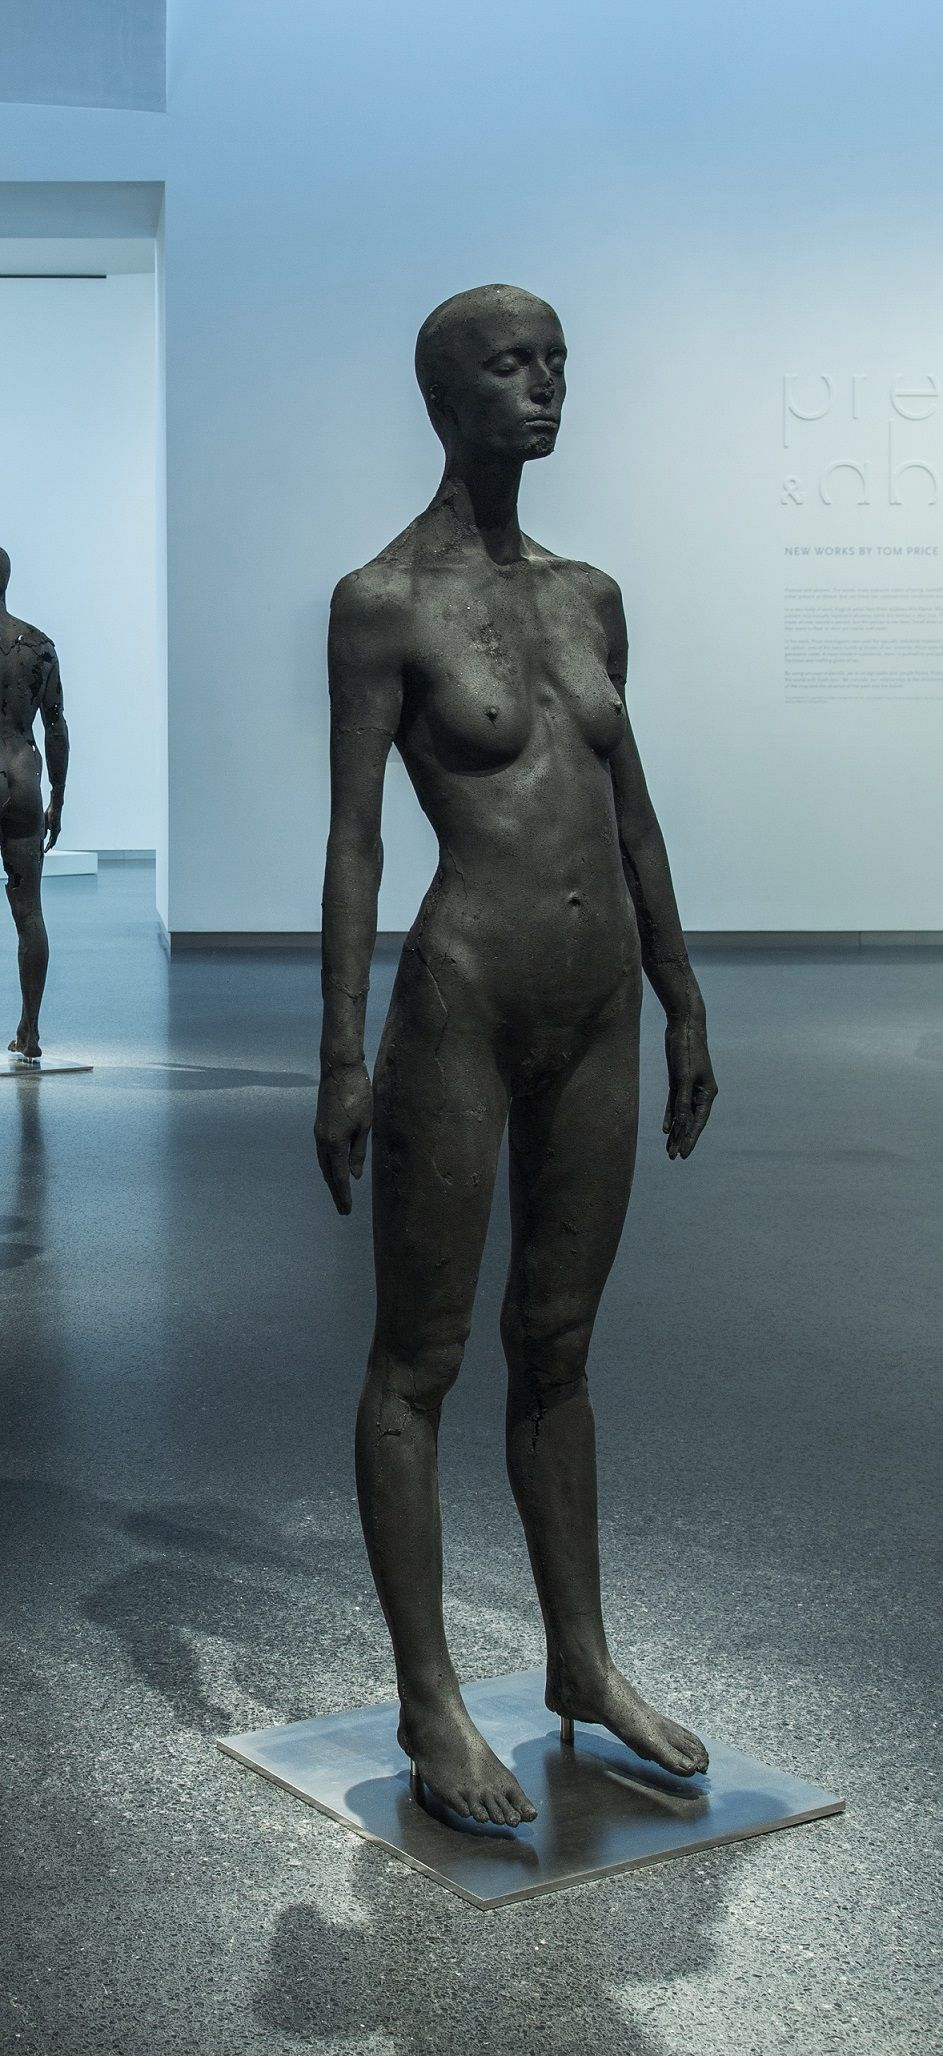 The Presence of Absence - Female (I),Tom Price,Sculpture